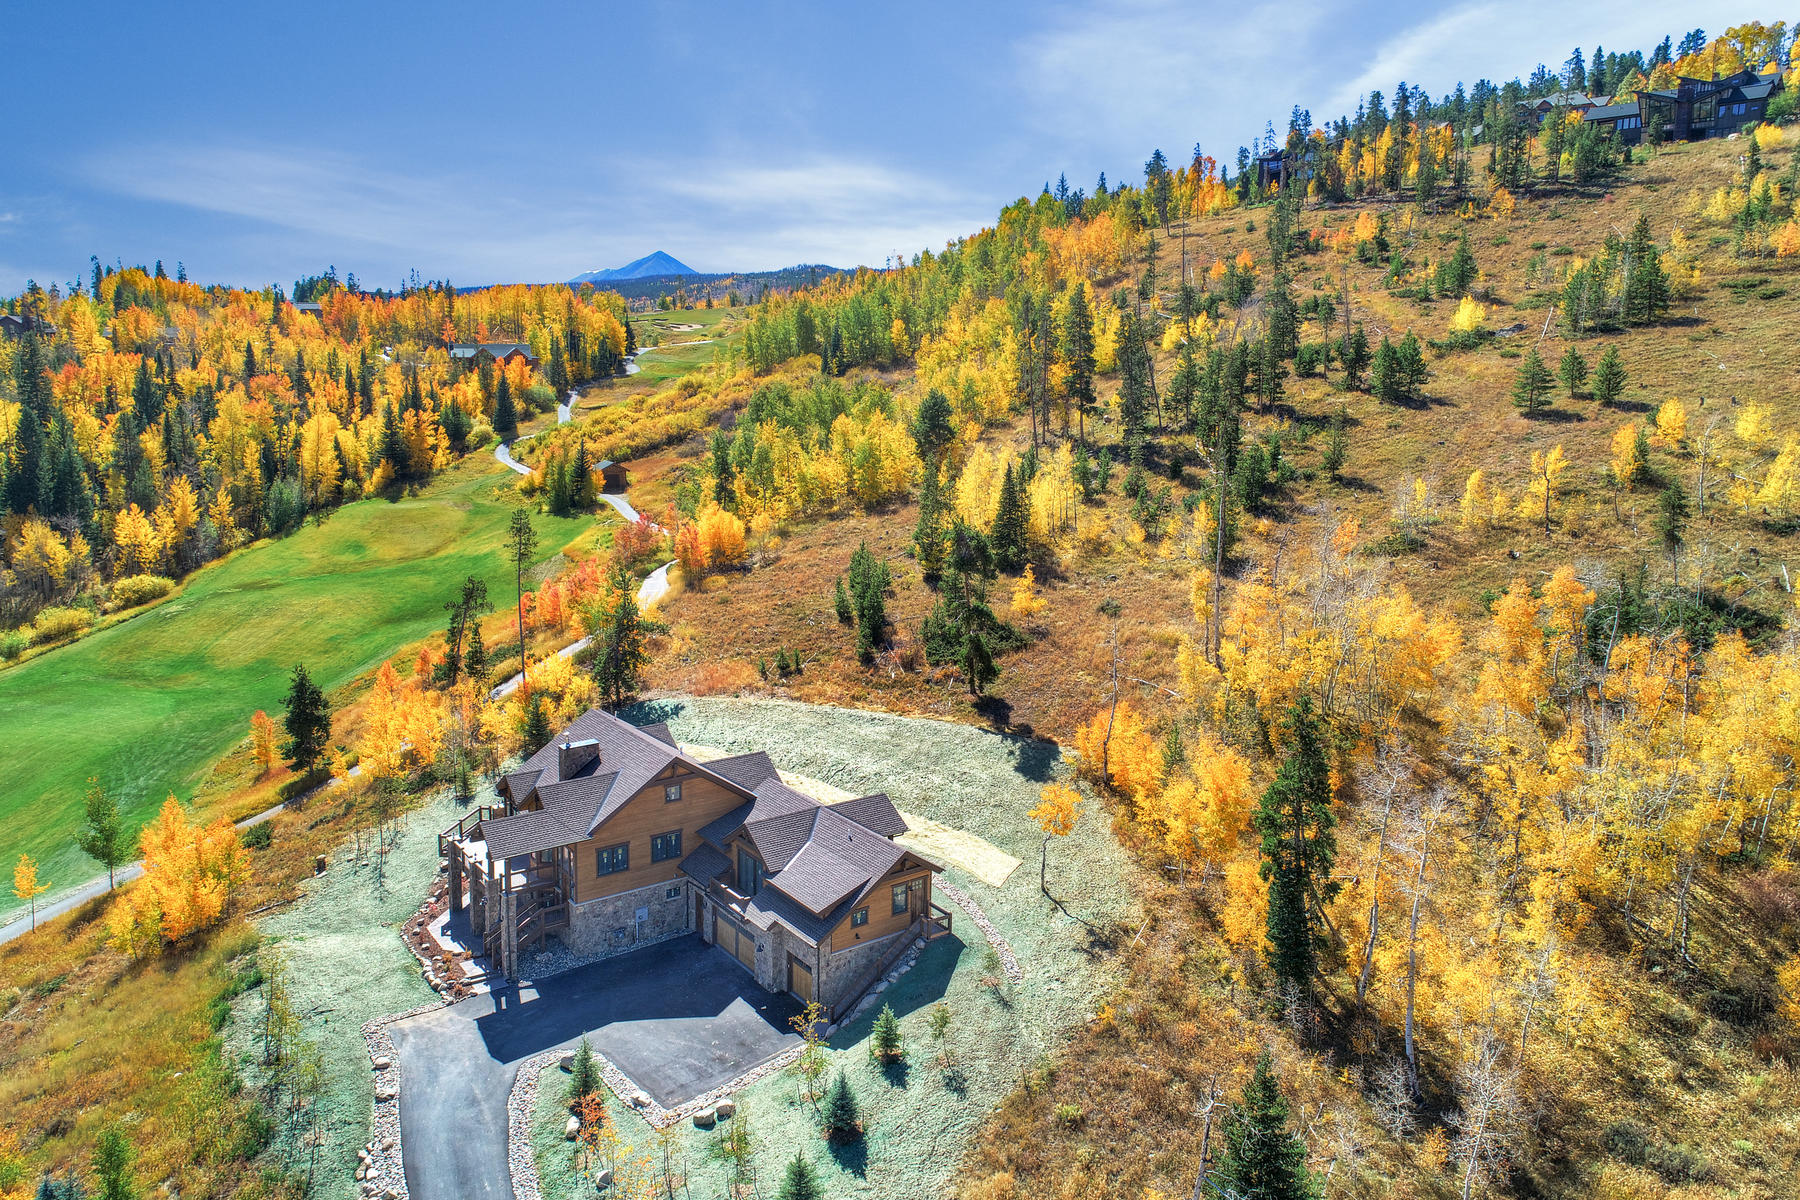 Single Family Homes for Active at Raven Golf Course 301 Raven Golf Lane Silverthorne, Colorado 80498 United States